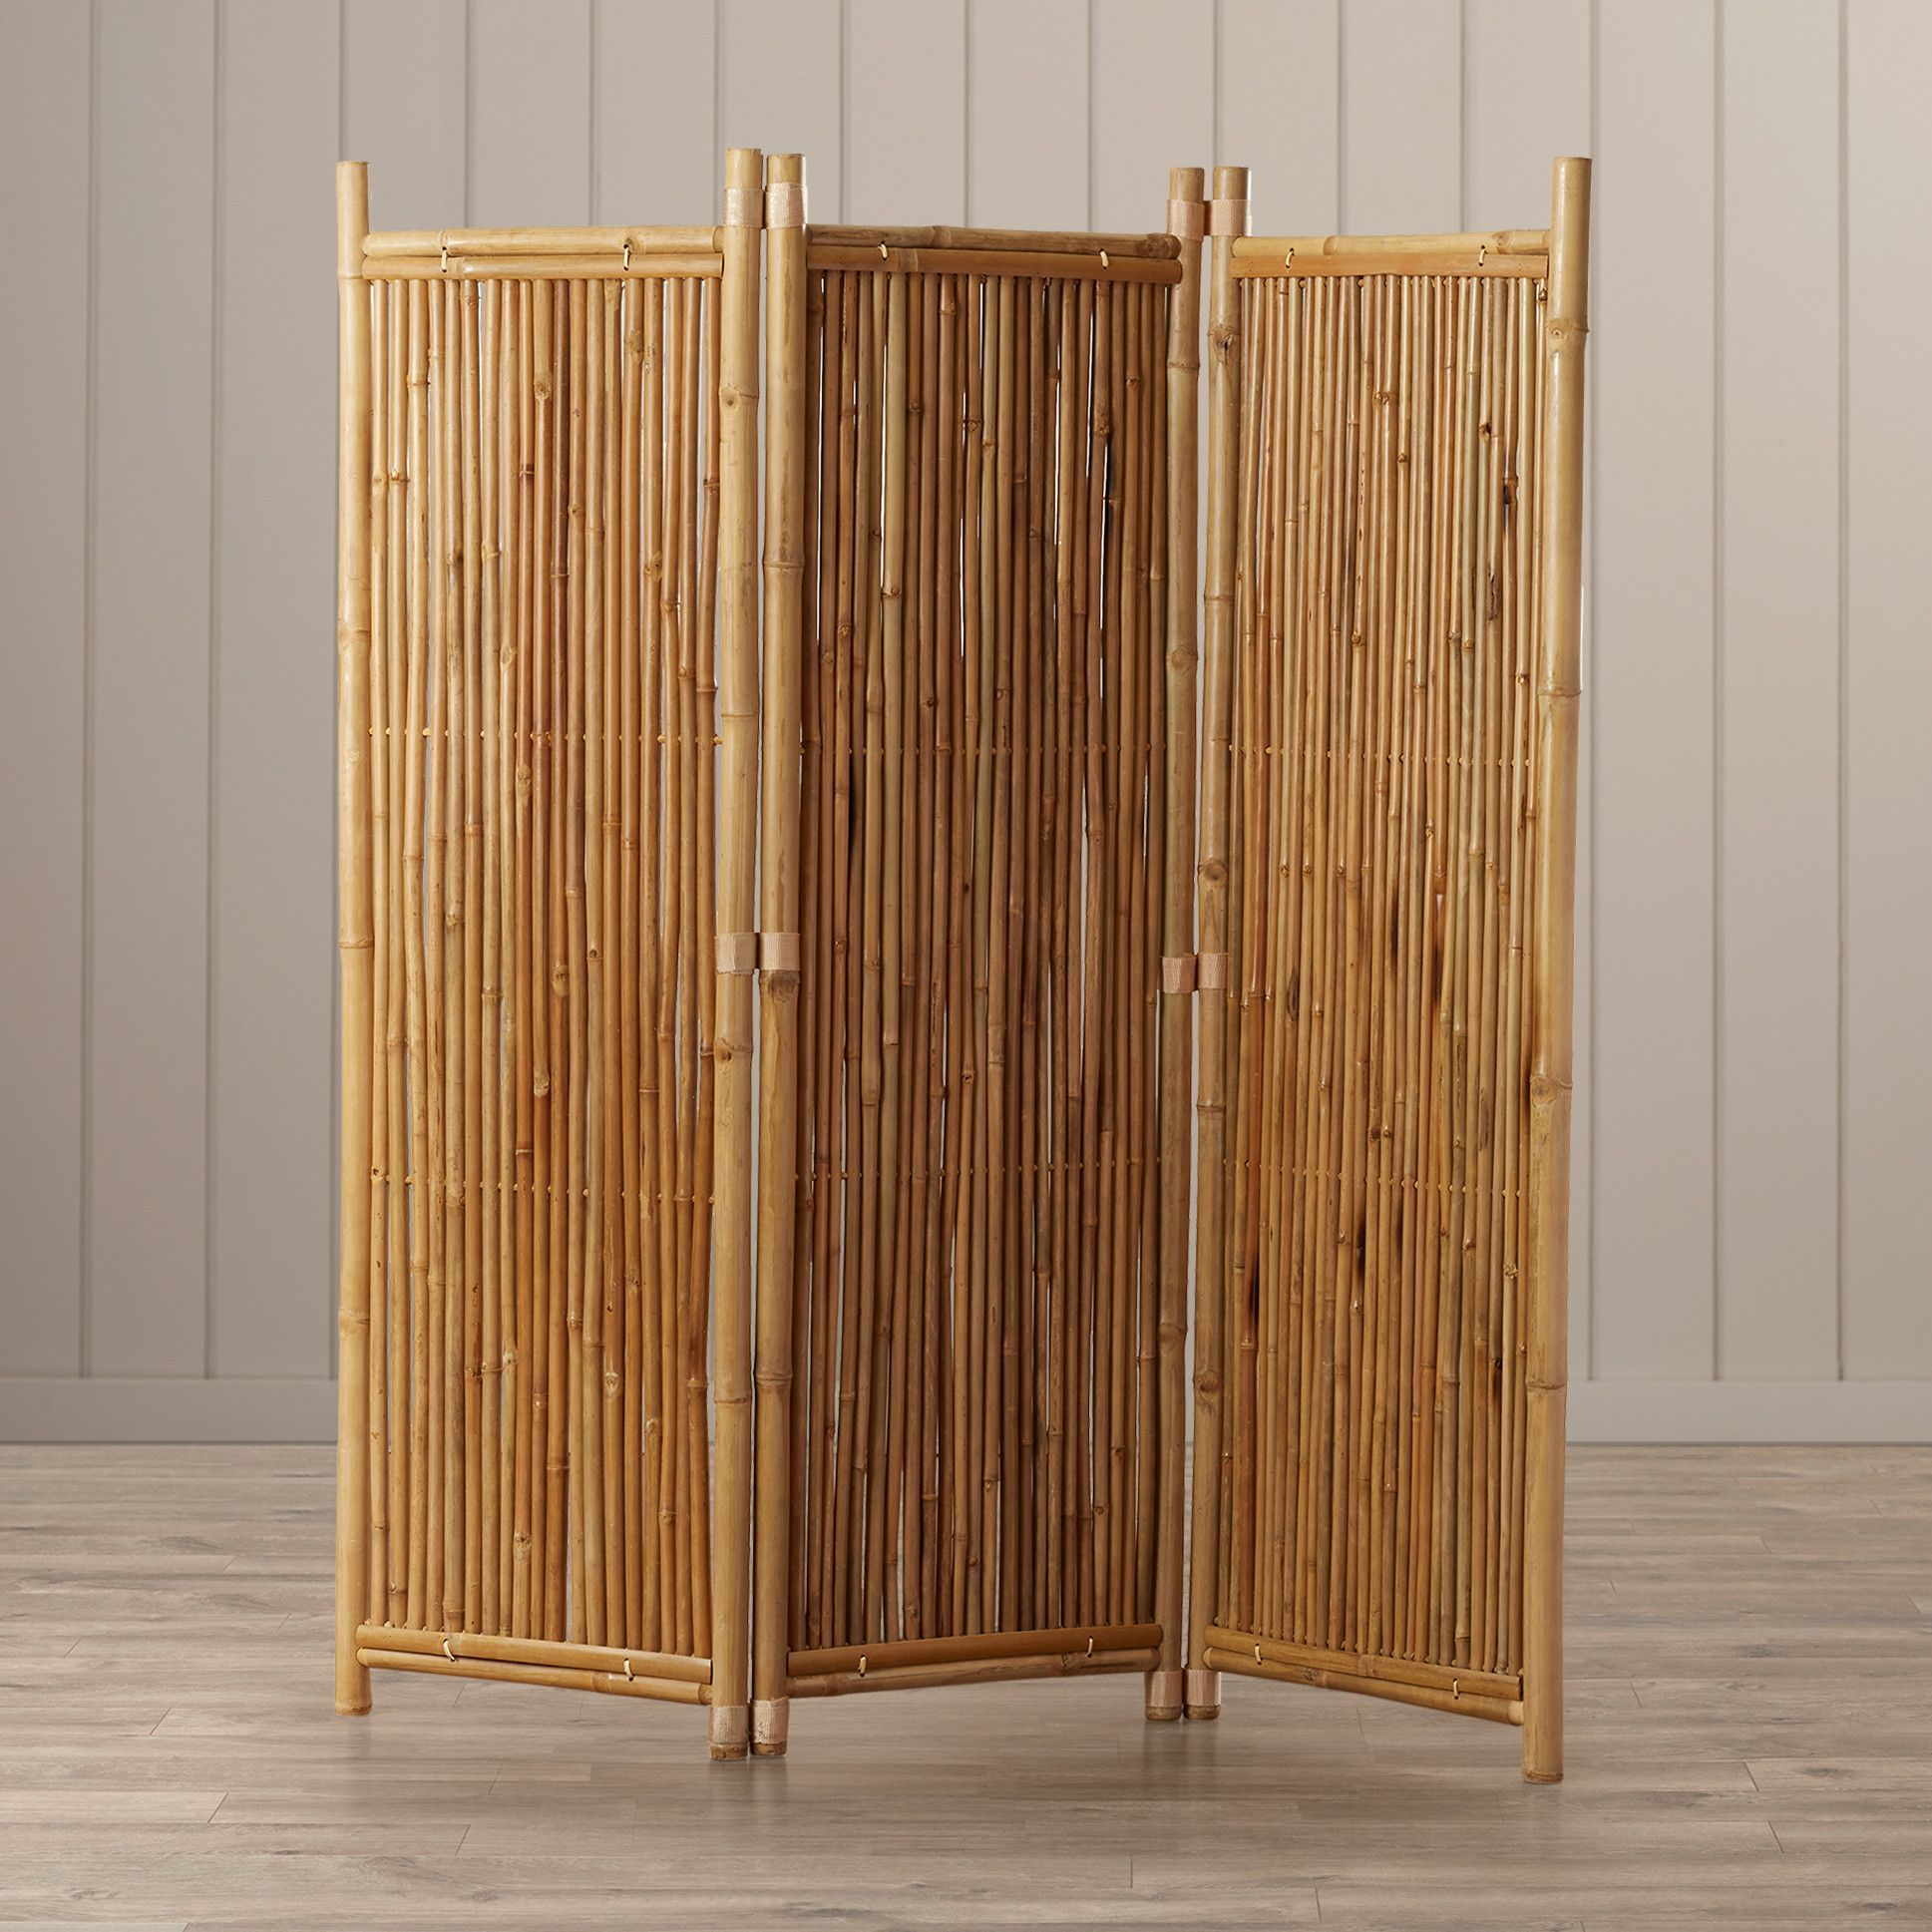 Marvellous Bamboo Room Dividers Hanging Bamboo Room Divider